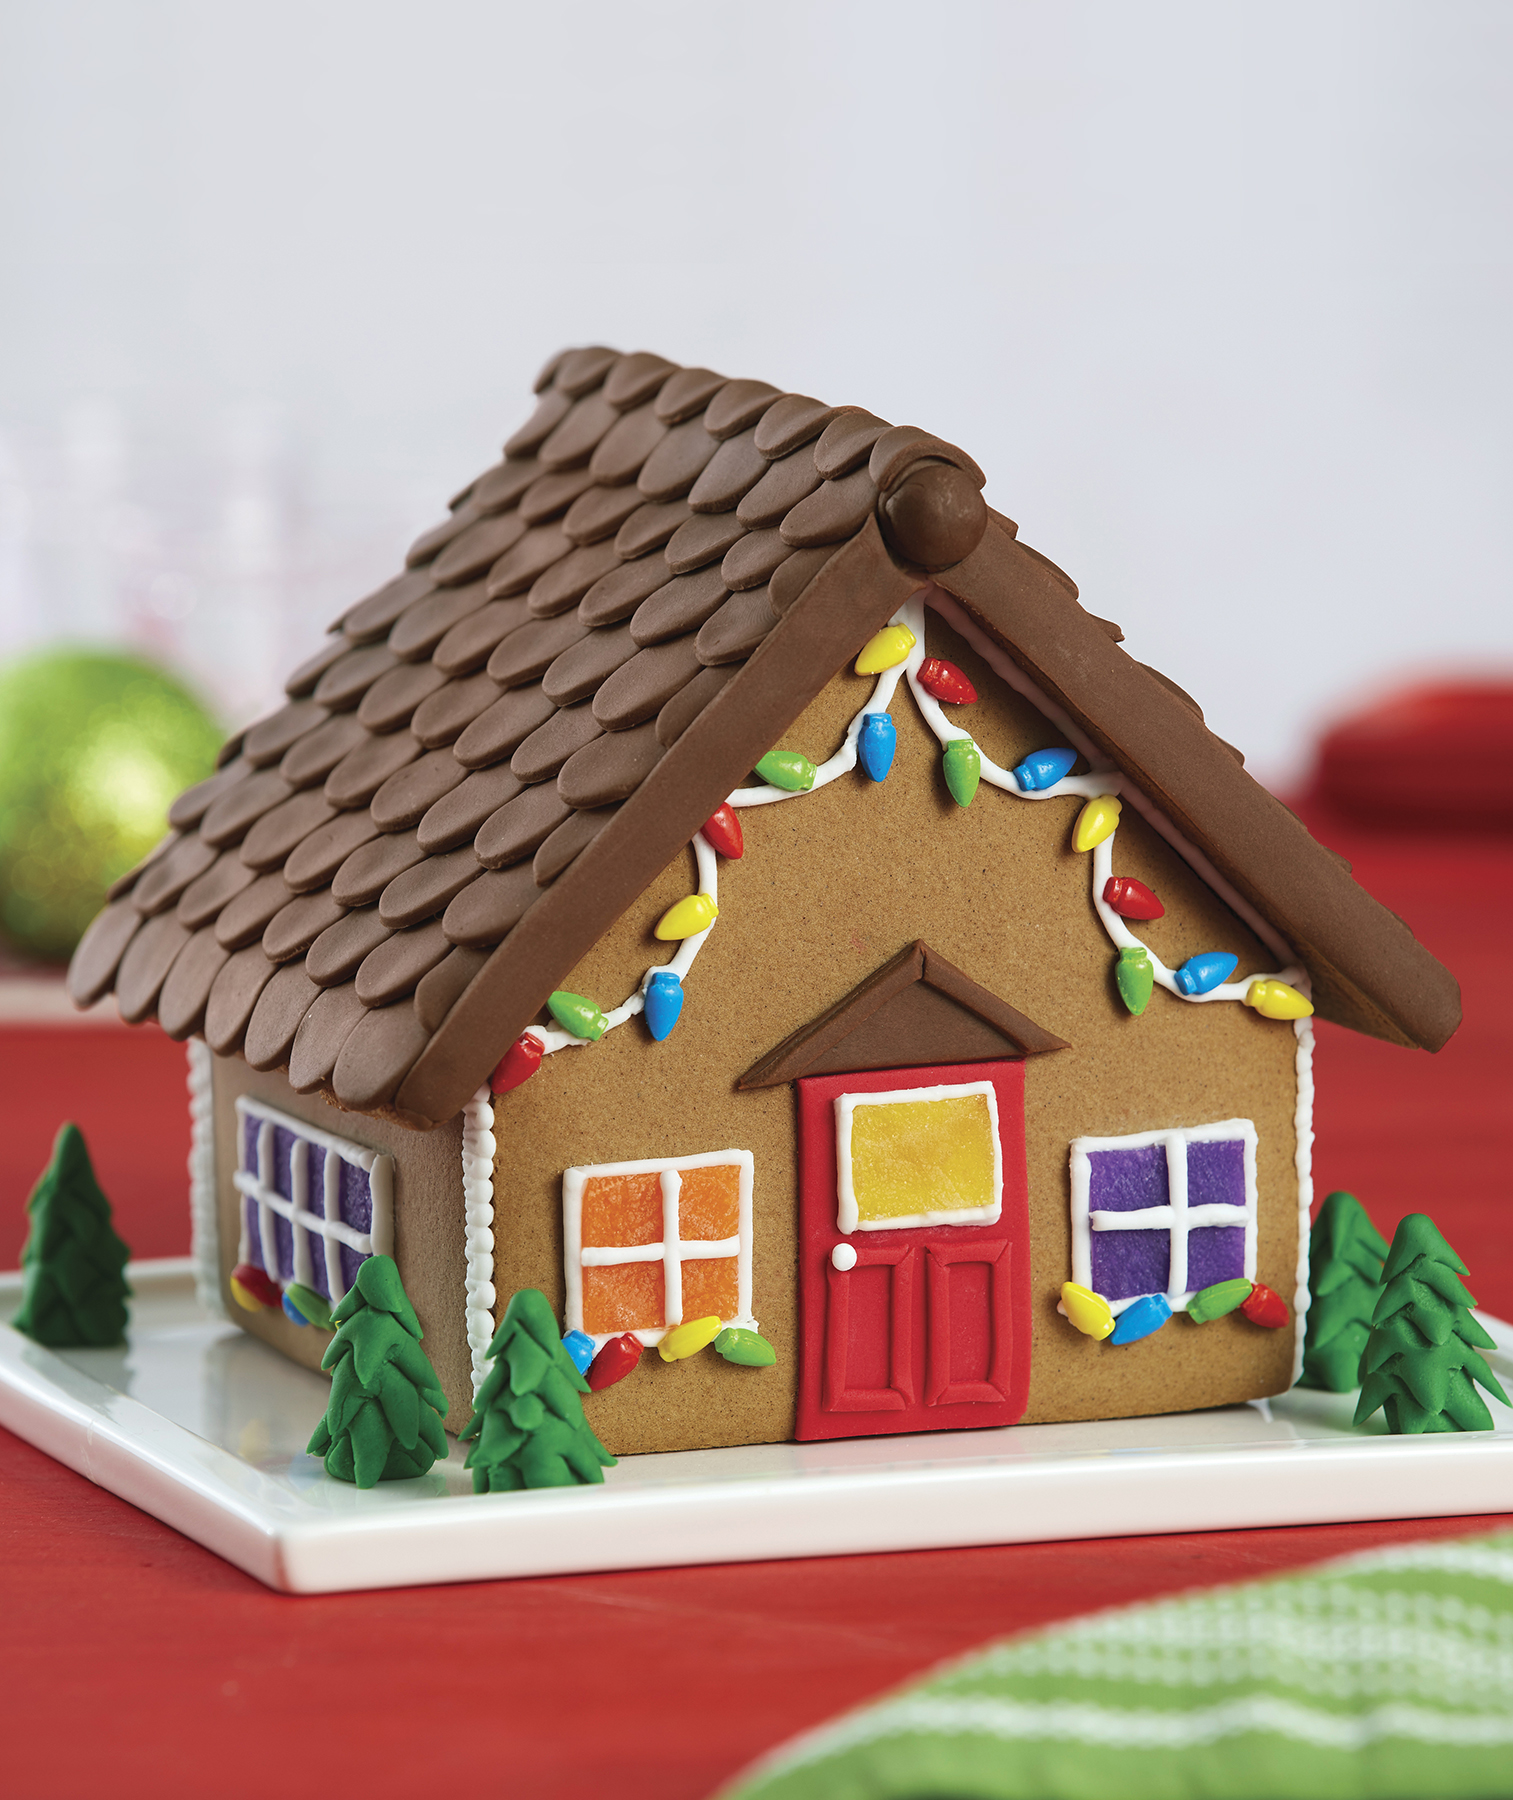 Gingerbread House Decorations to Take Your Creation to the Next Level